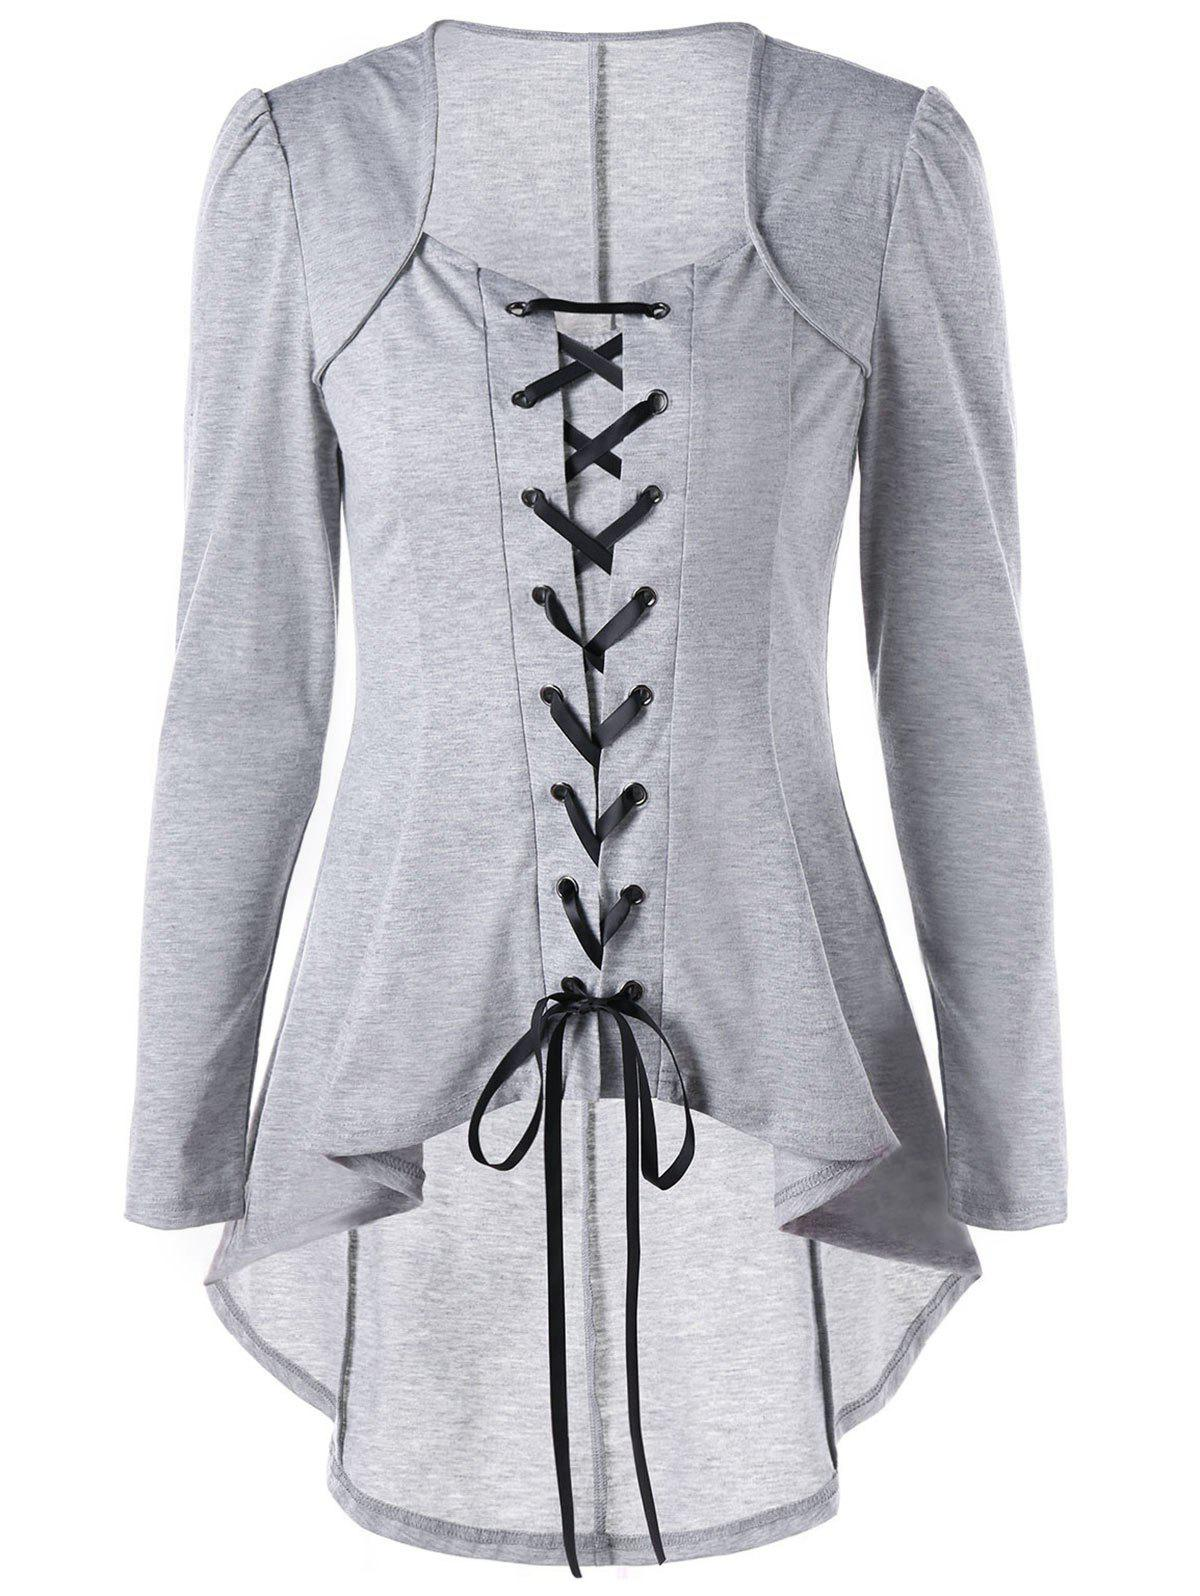 Lace Up High Low Gothic Top - LIGHT GREY XL